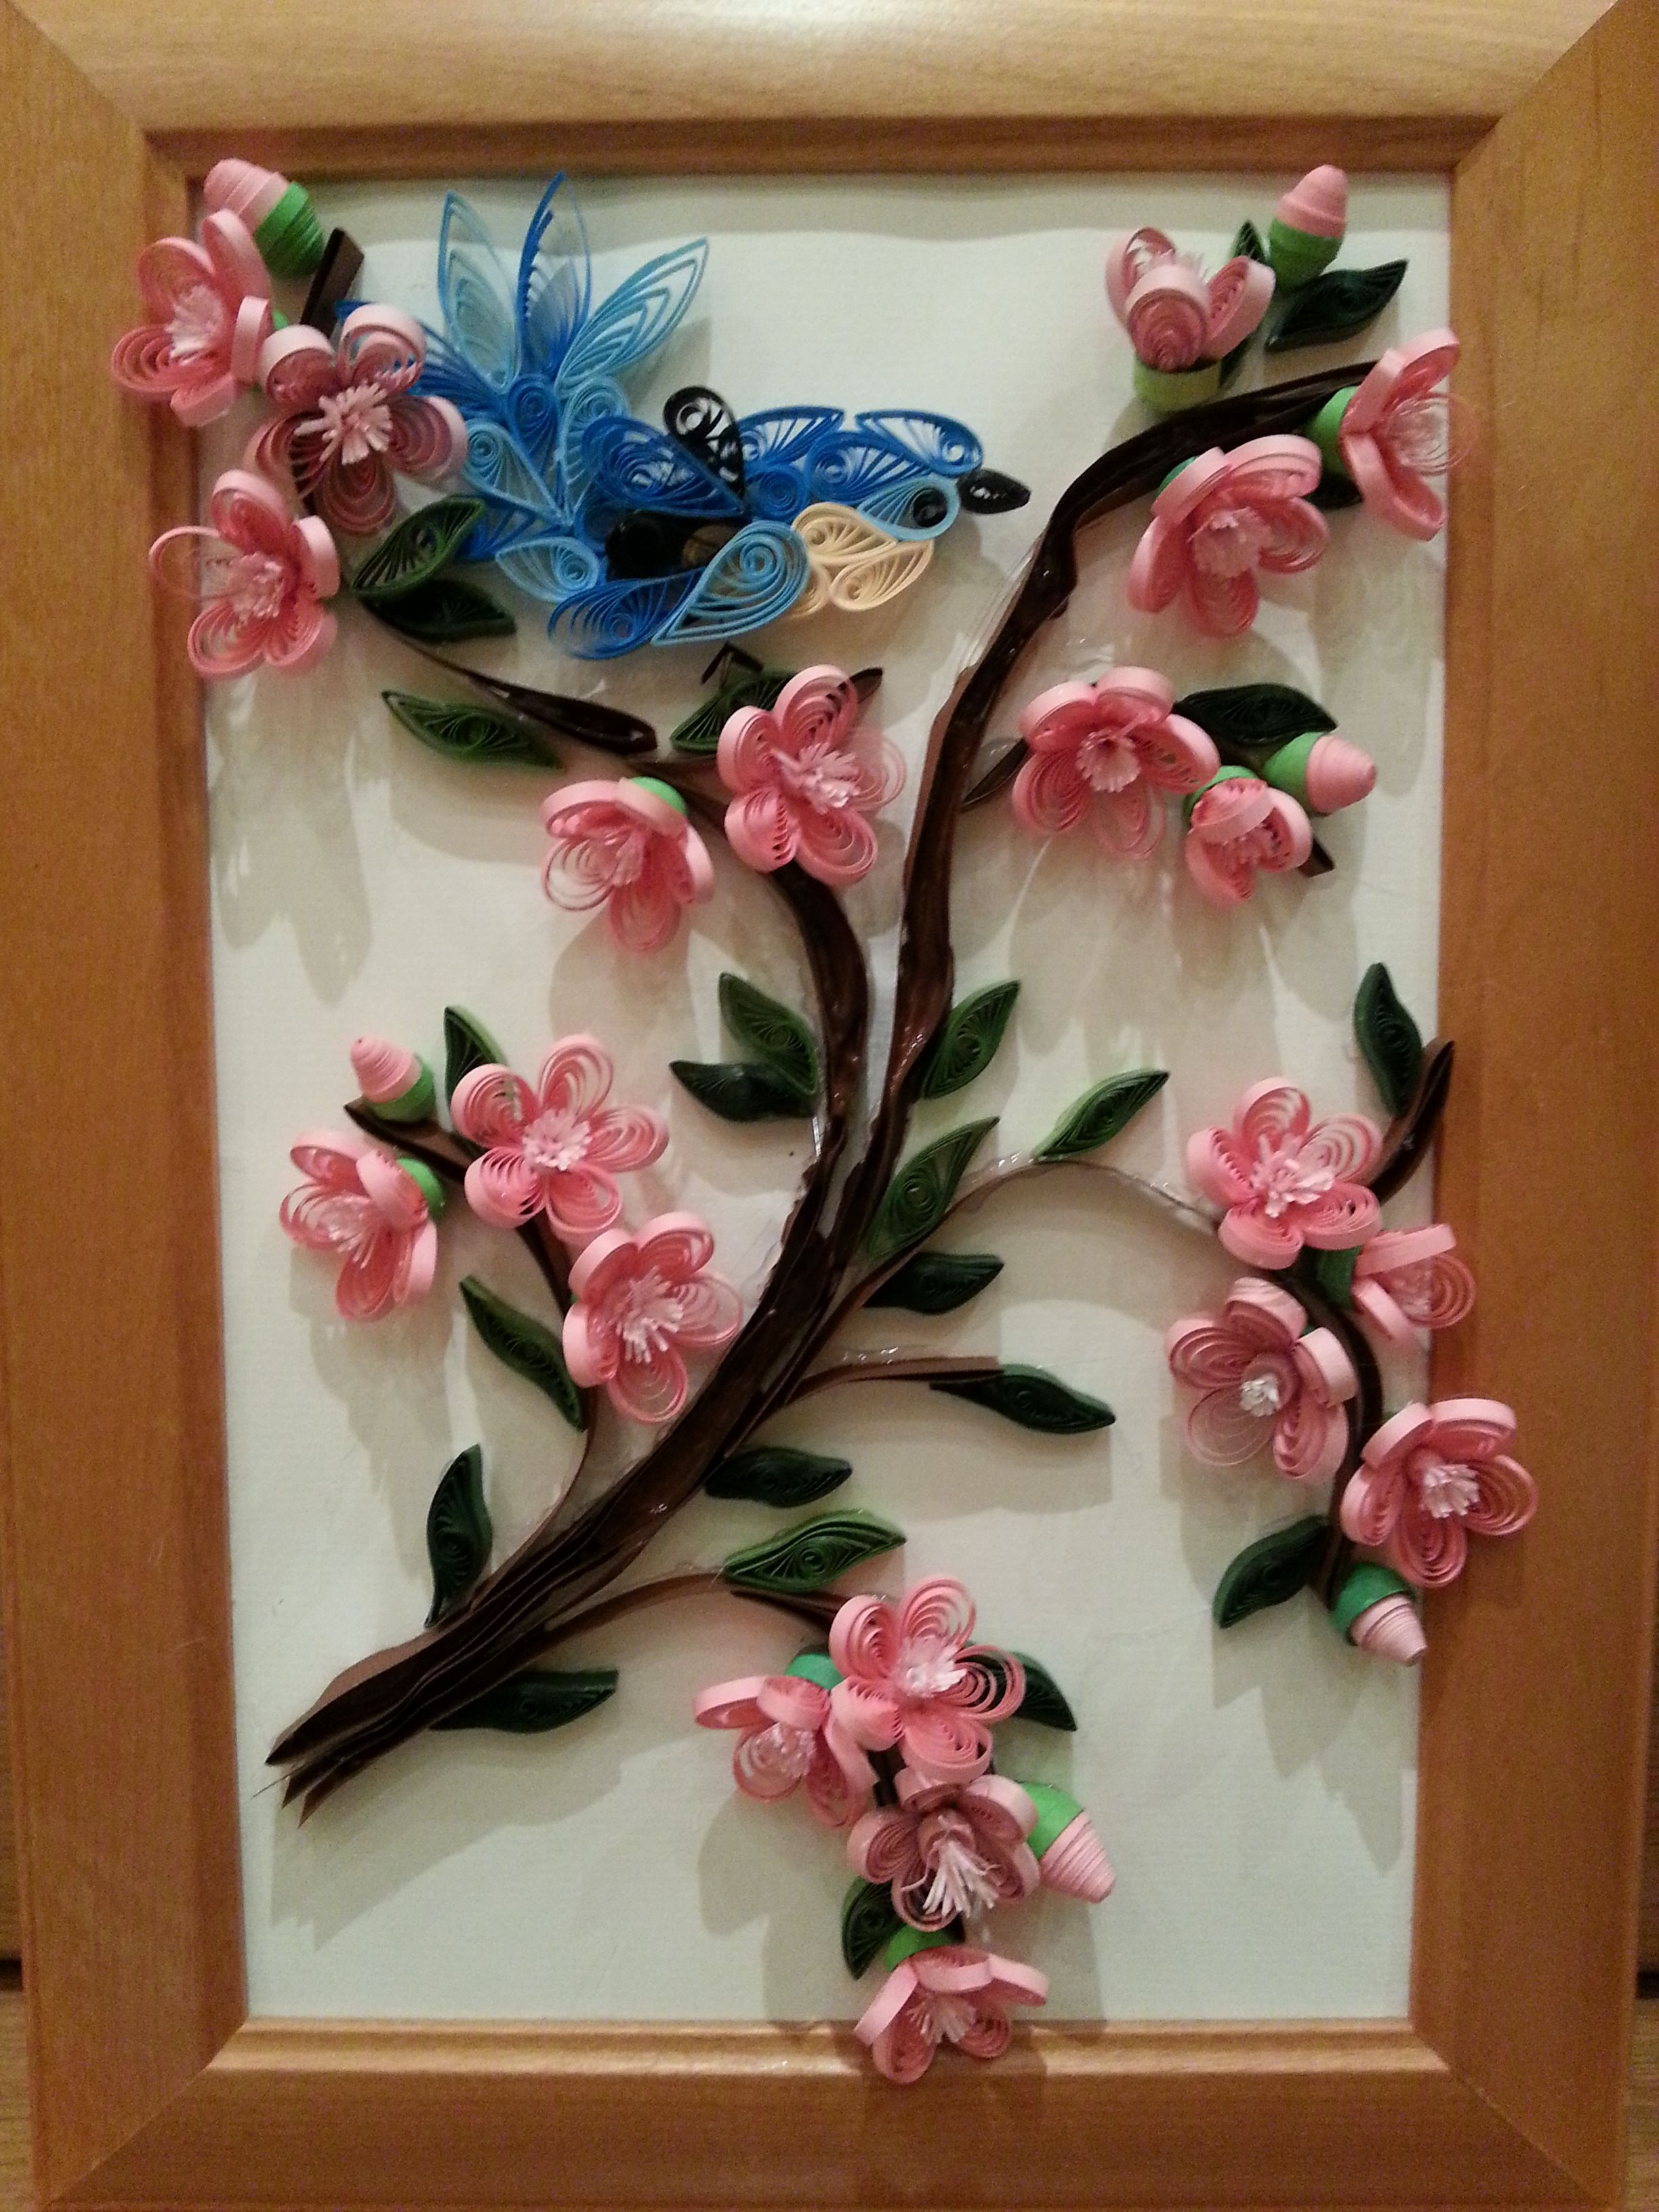 Pin By Kiraly Andrea On My Quilling Works Quilling Designs Quilling Patterns Quilling Flowers